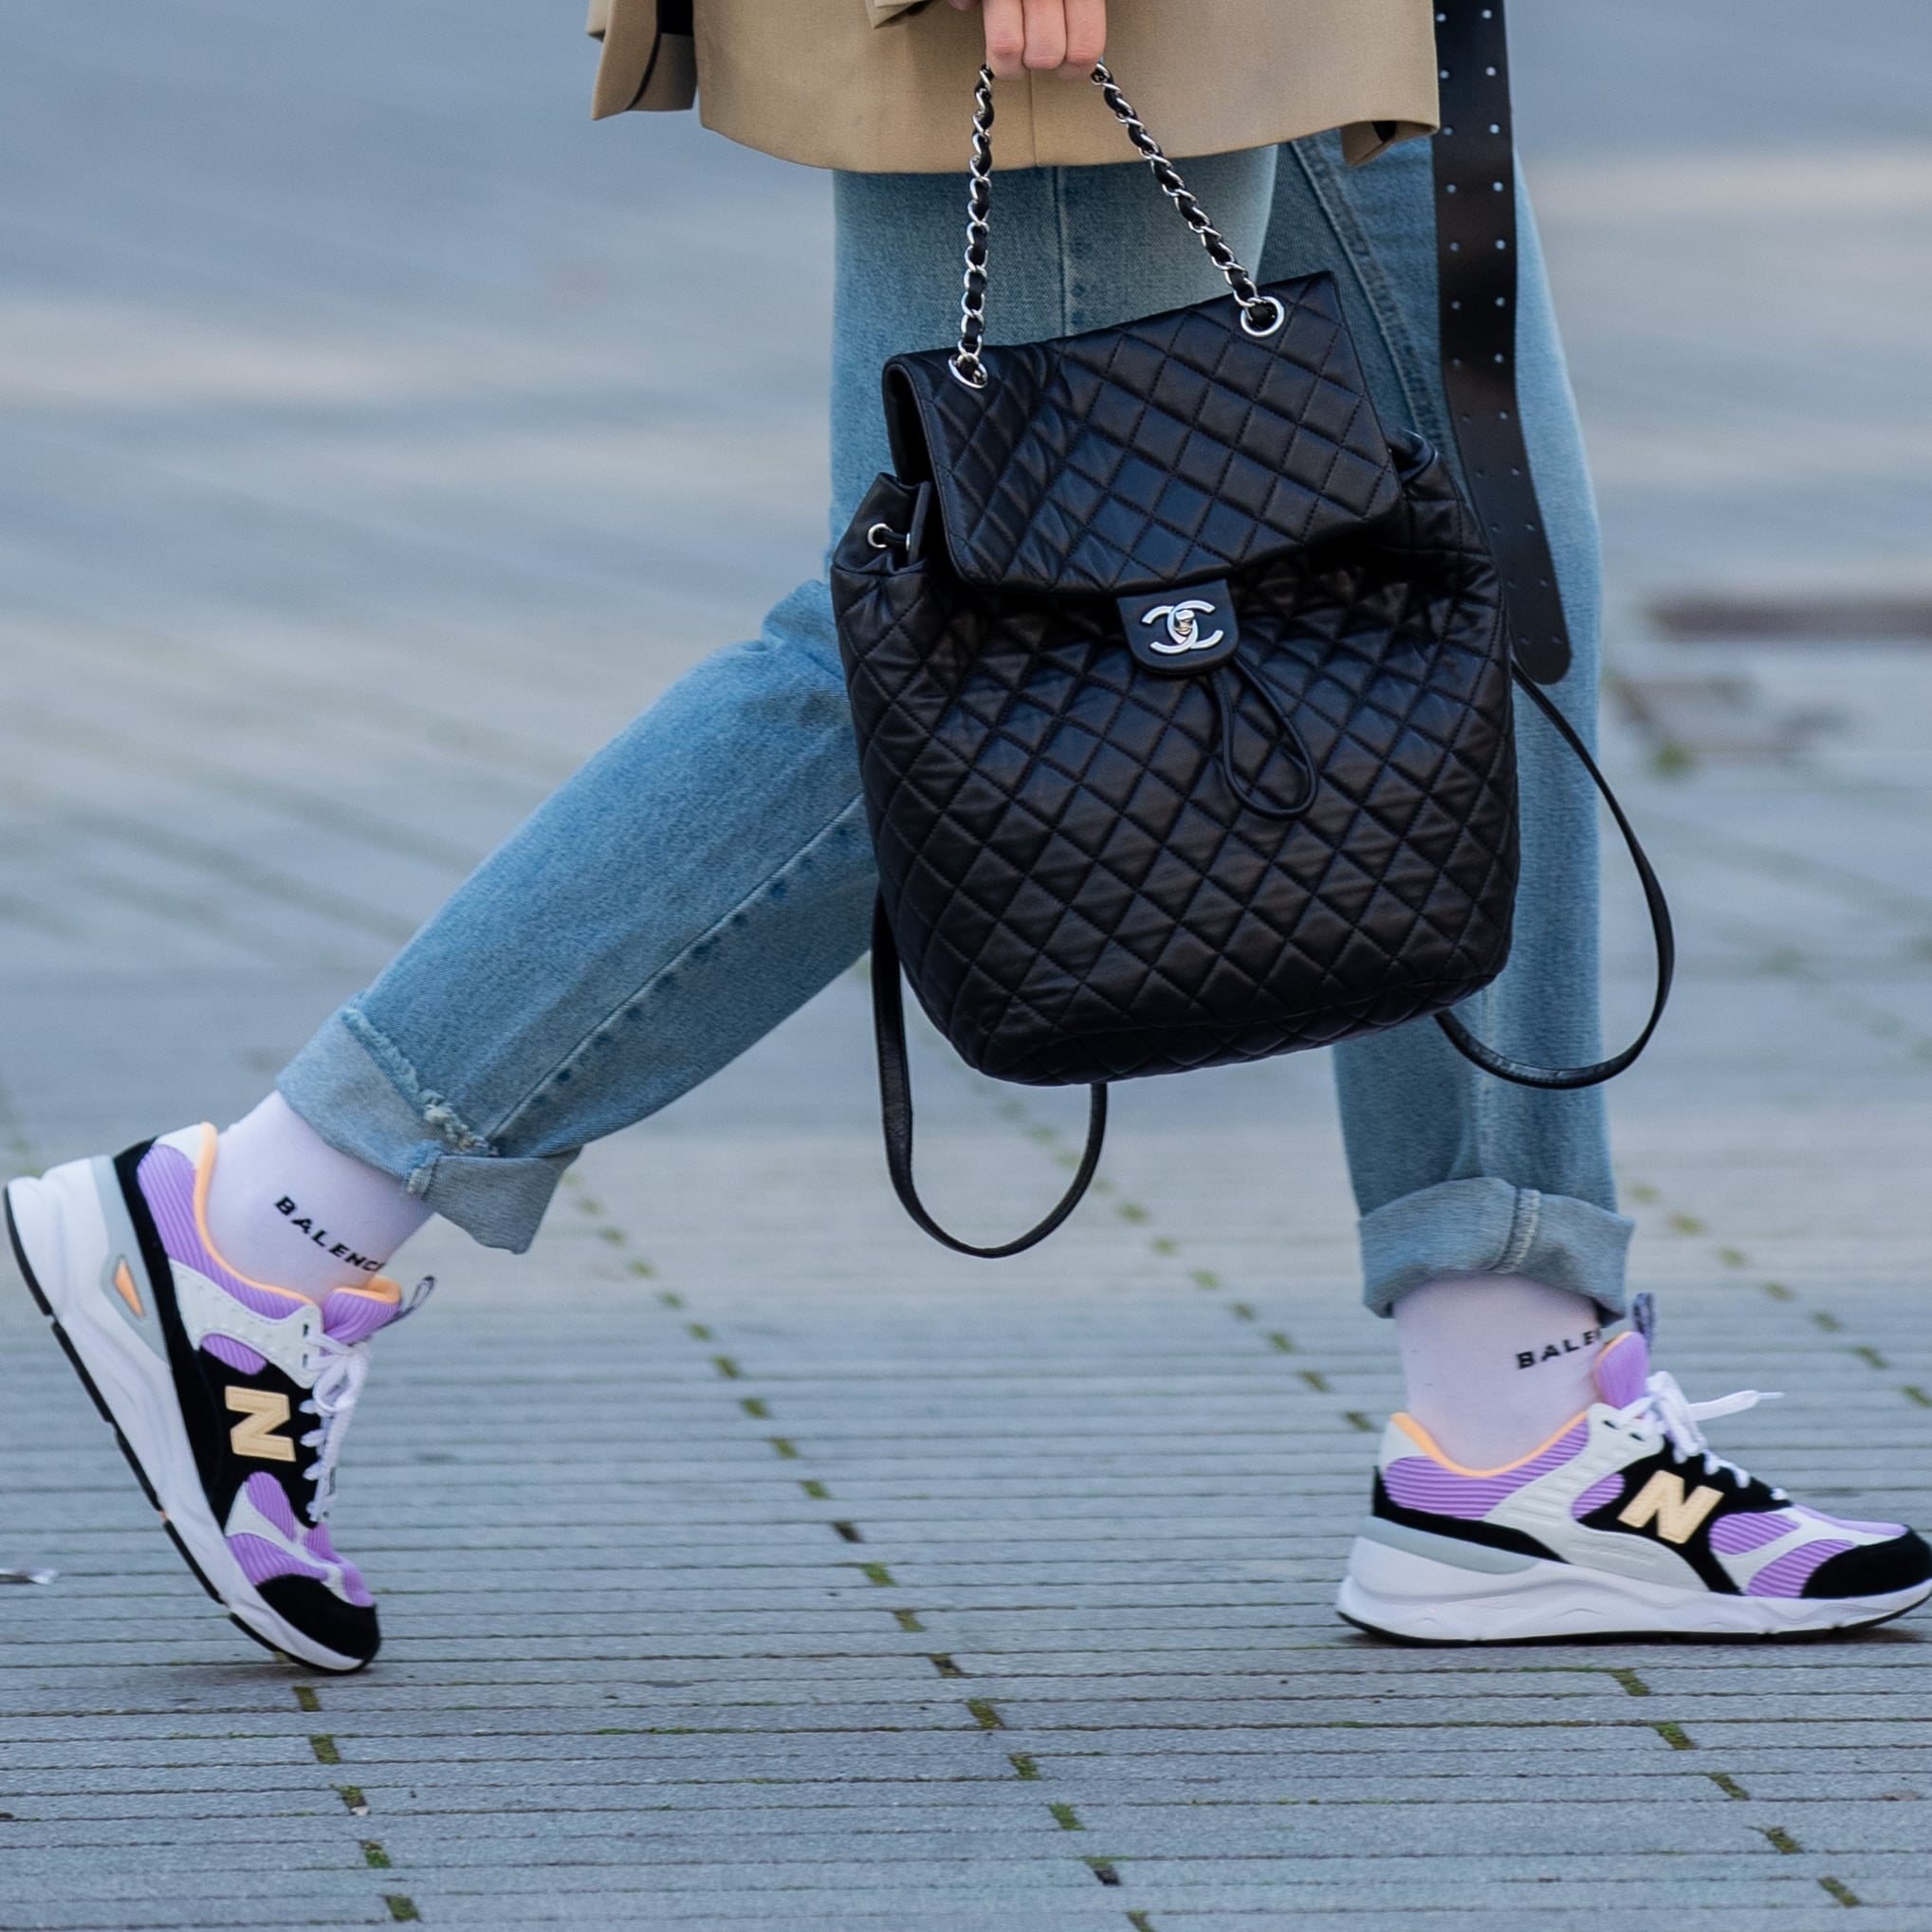 Trainers are fashion's hottest shoe